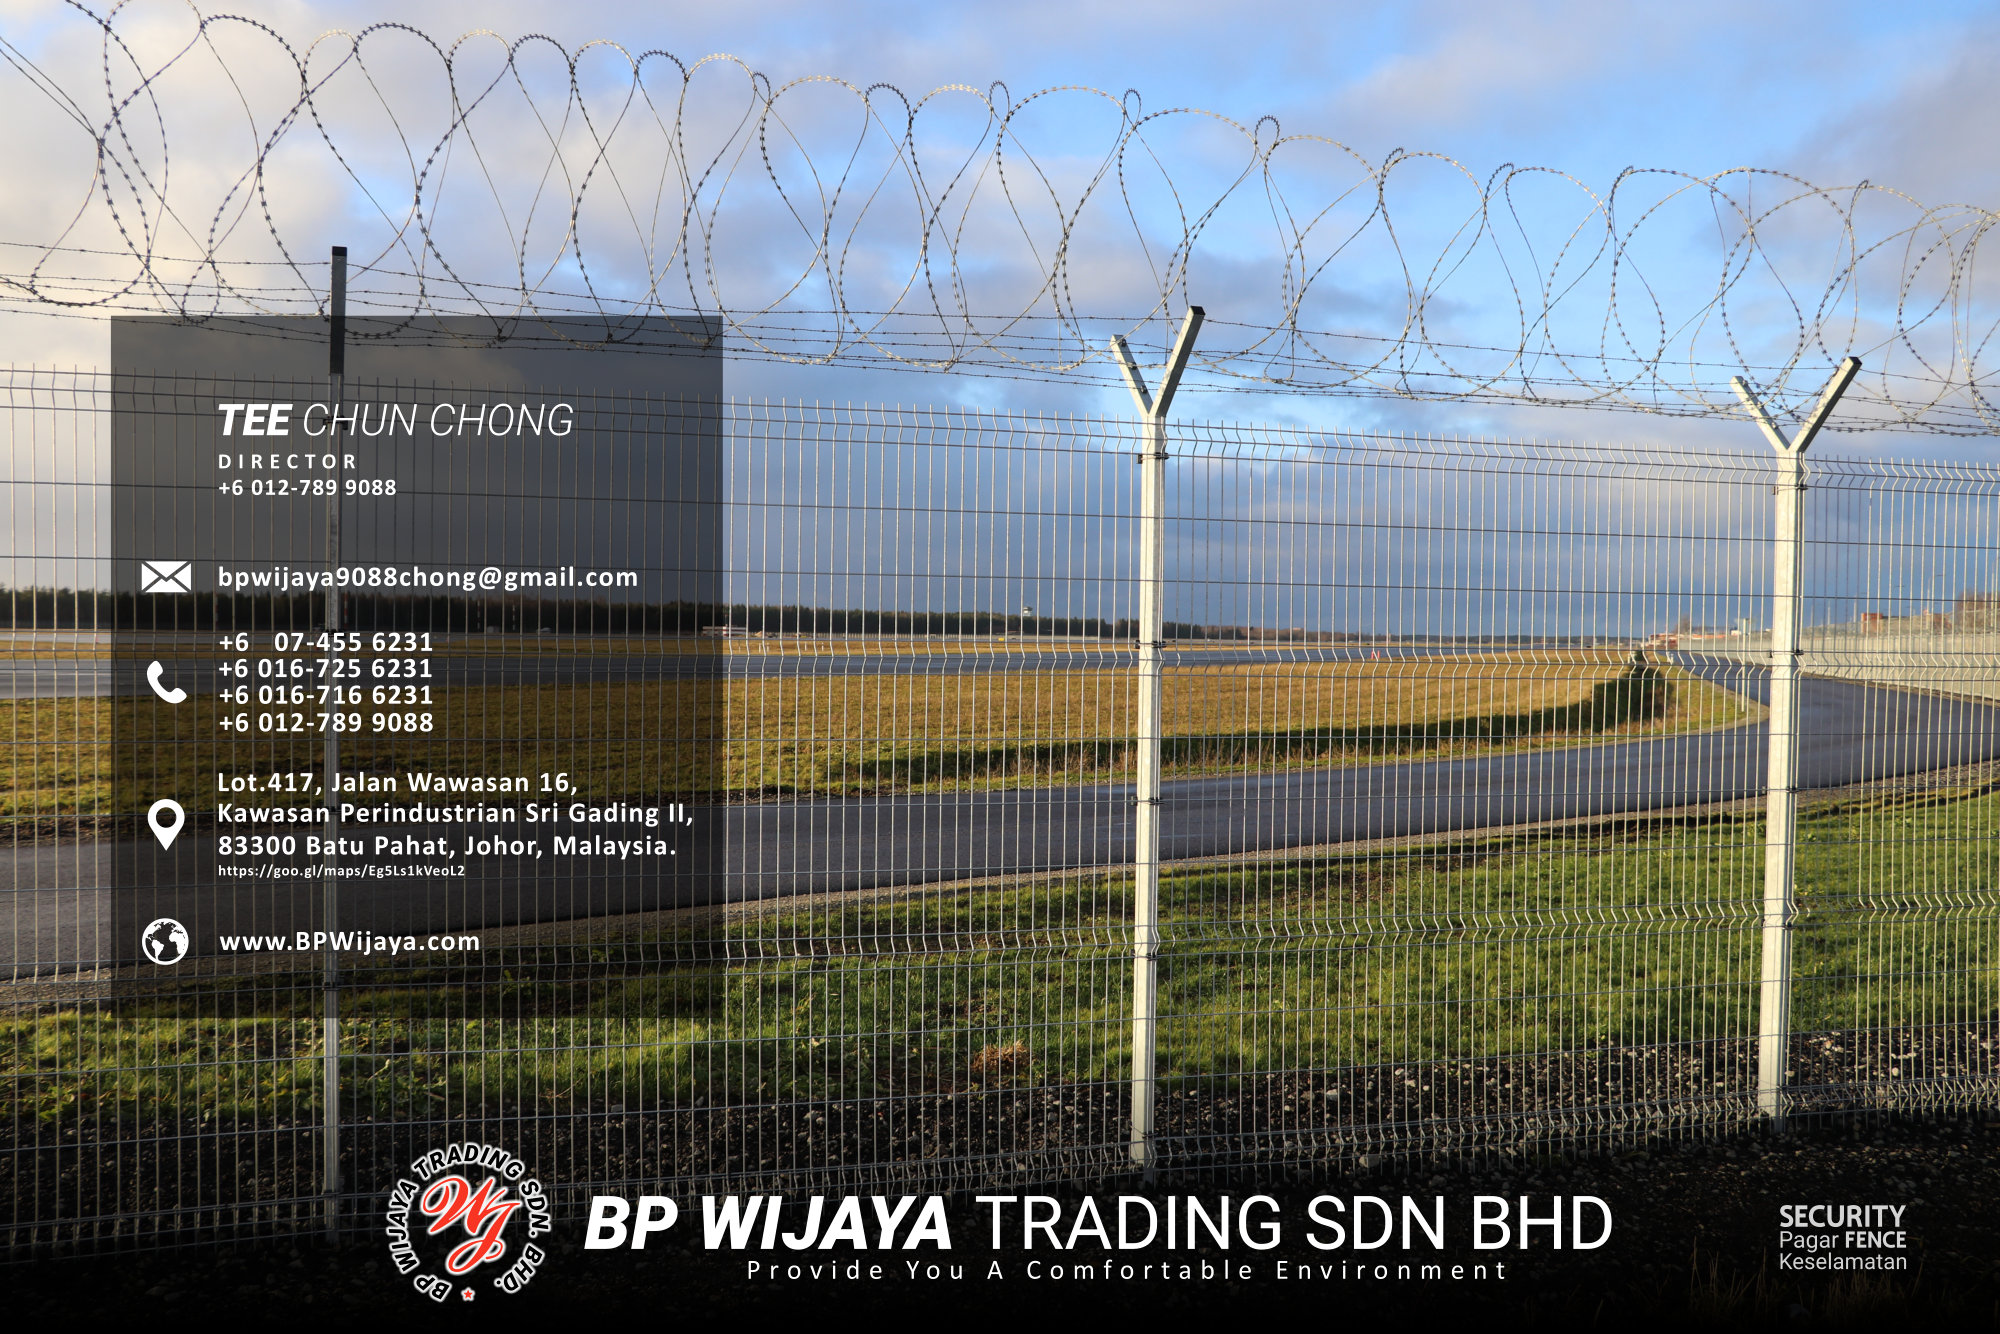 Kuala Lumpur Security Fence Supply we are manufacturer of security fence BP Wijaya Trading Sdn Bhd Safety Fence Building Materials for Housing Construction factory fence house beauty fence A03-015